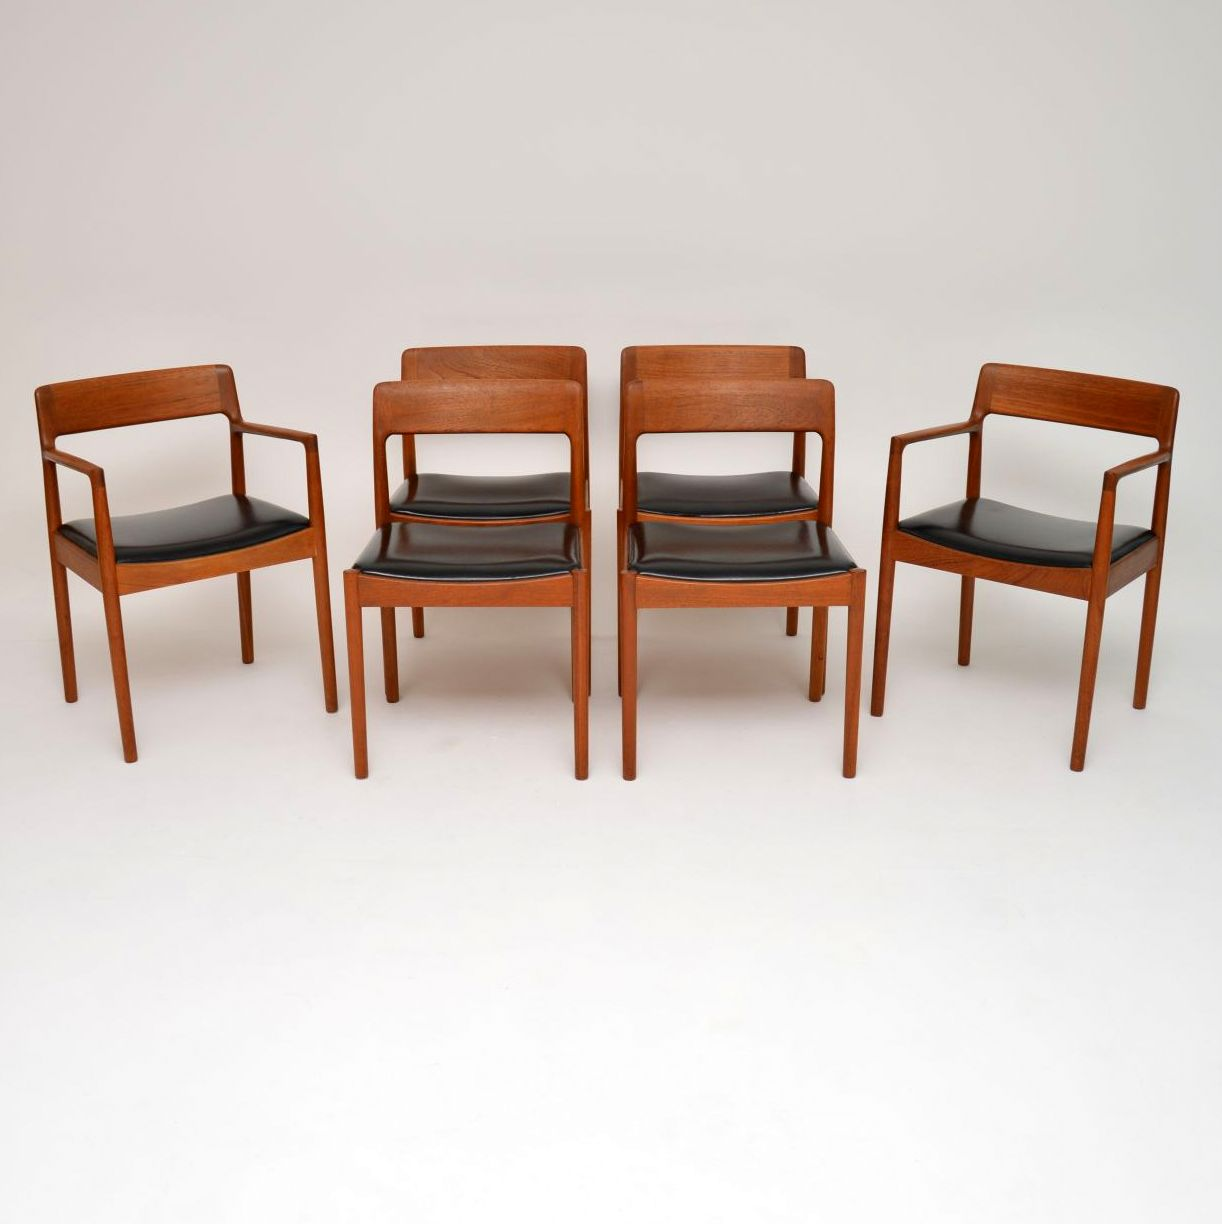 1960s Set Of 6 Danish Teak Dining Chairs By Norgaards La119300 Loveantiques Com